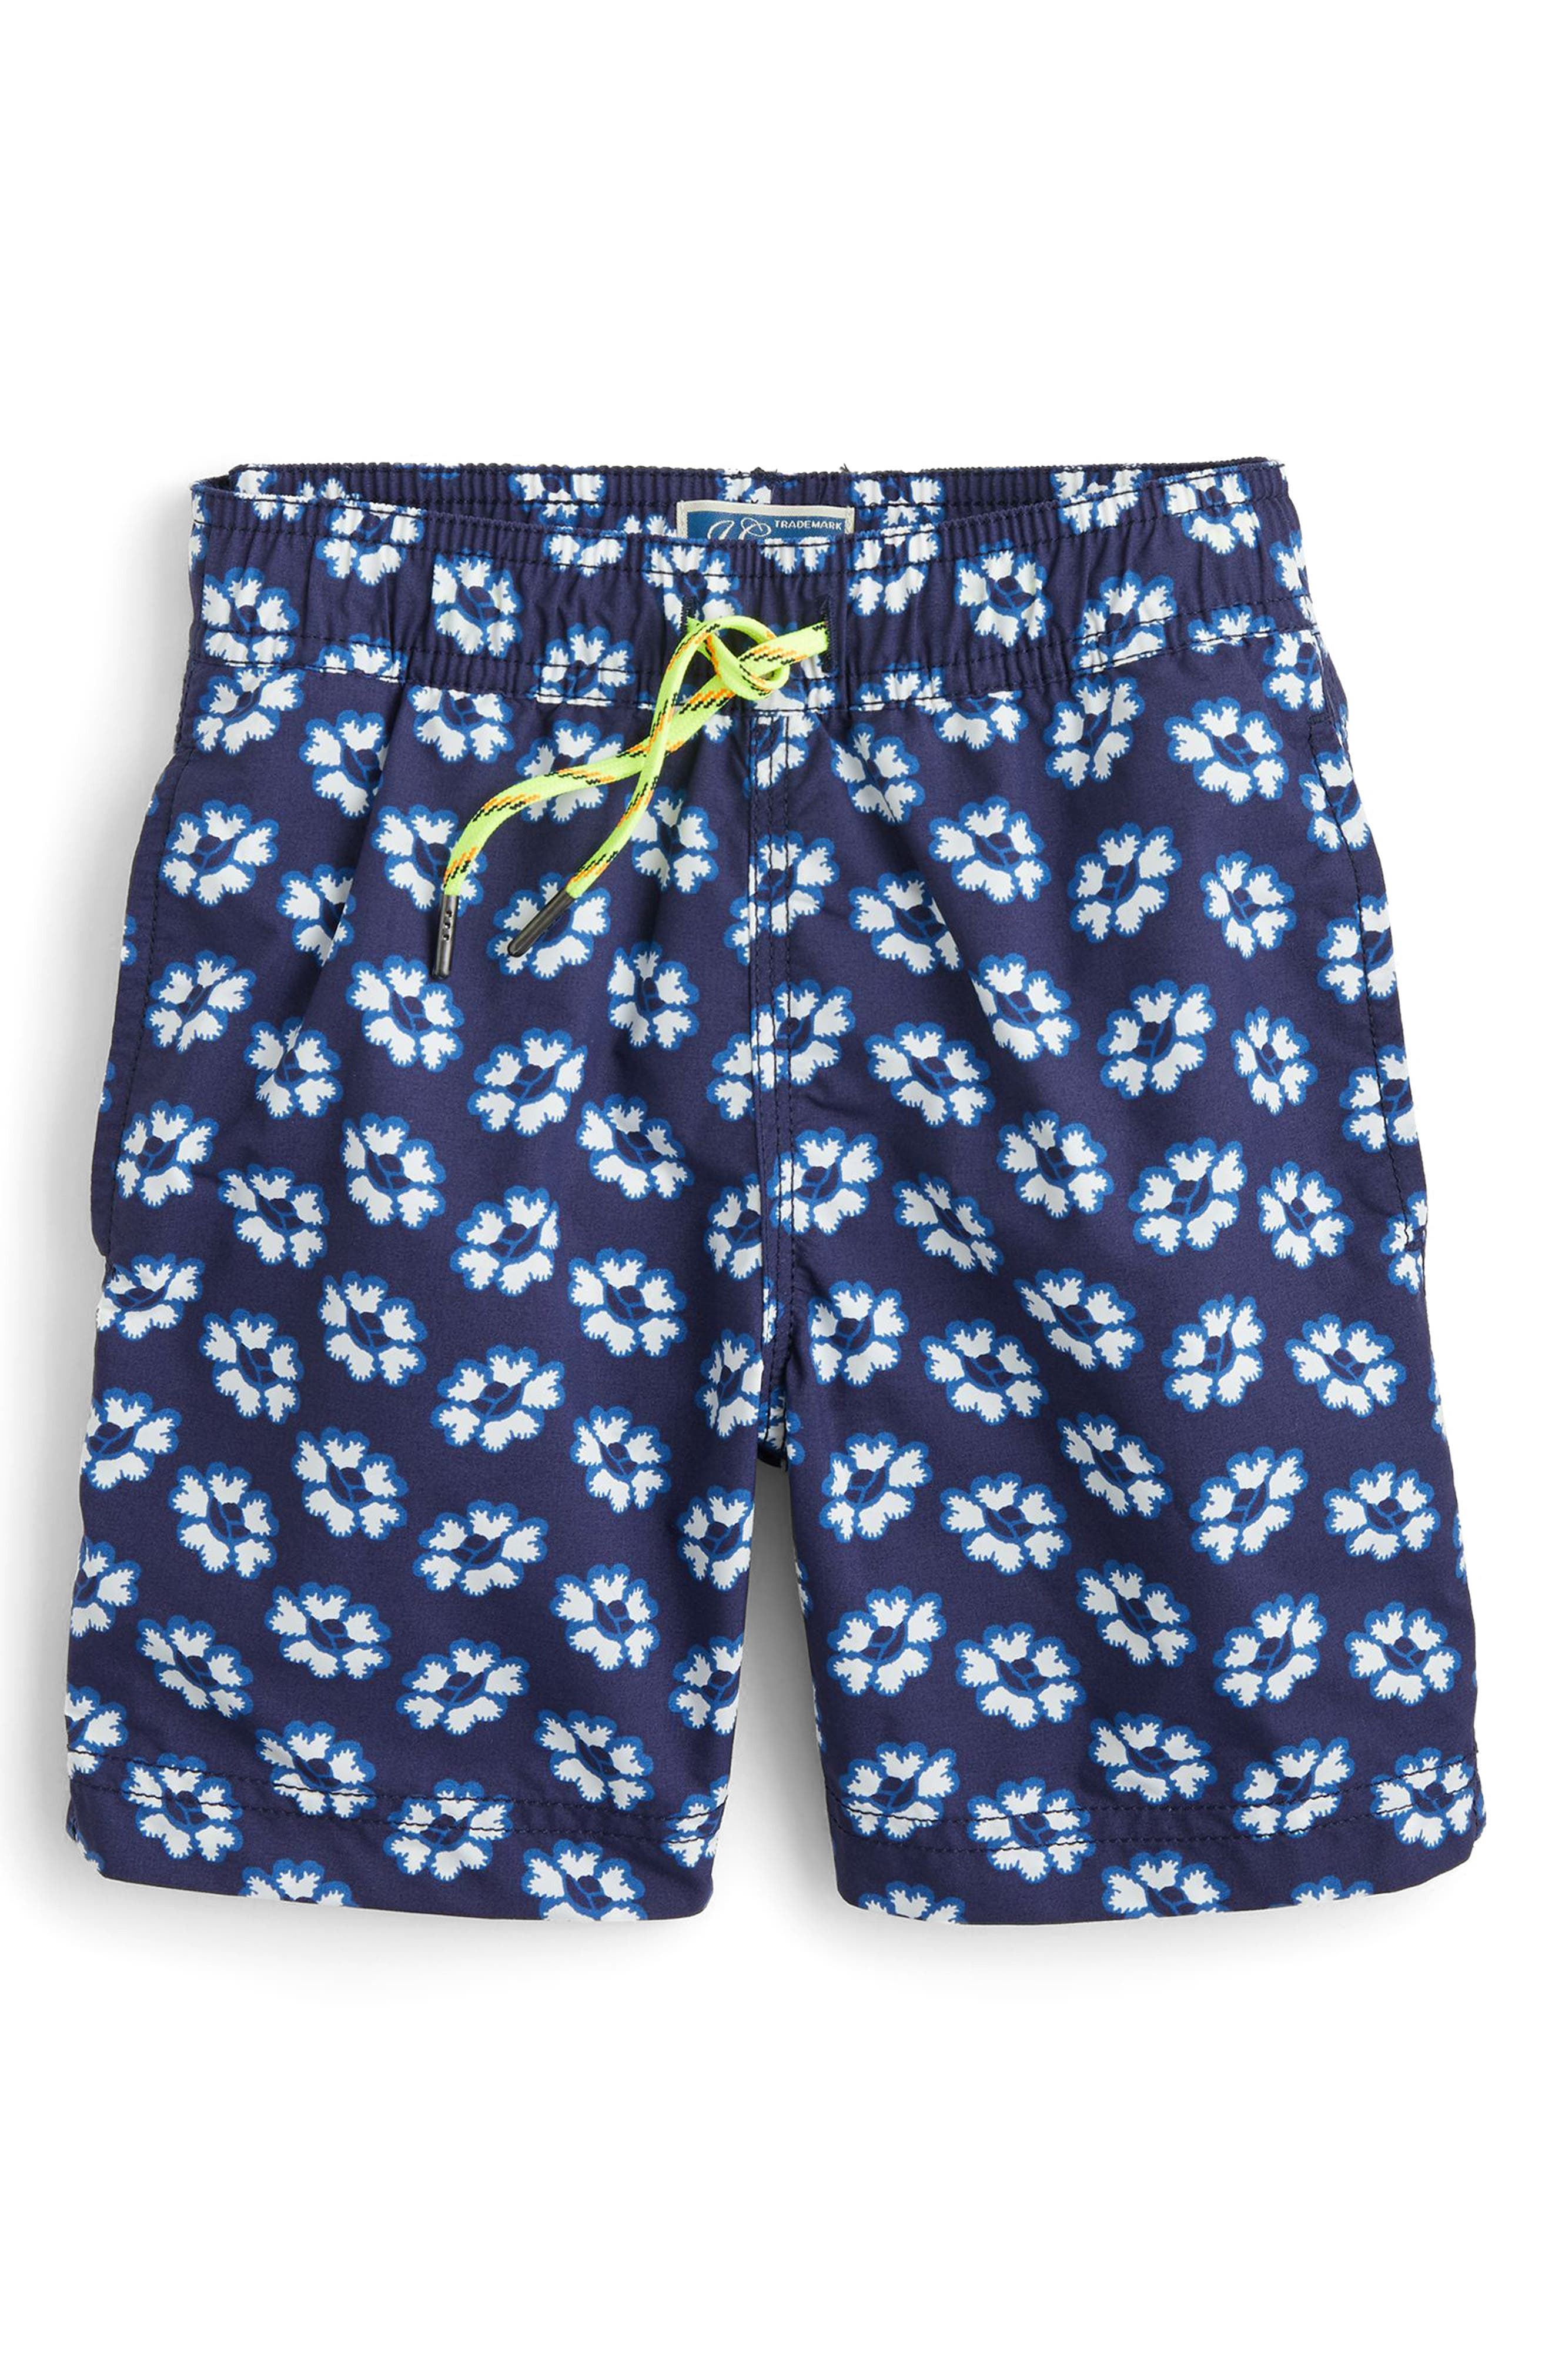 Blurry Flowers Swim Trunks,                             Main thumbnail 1, color,                             400